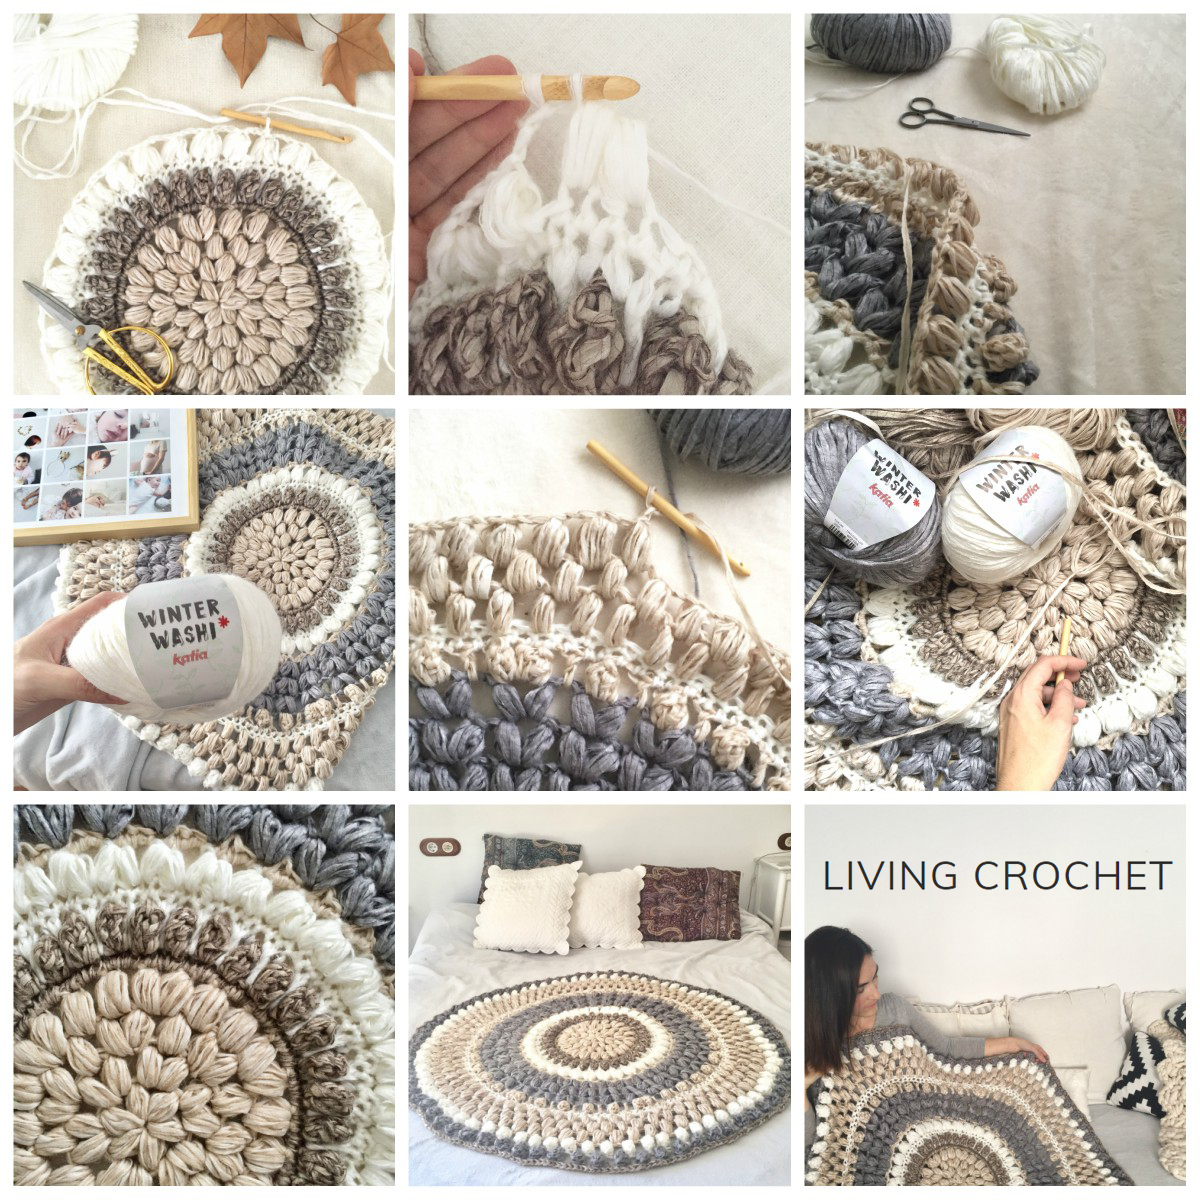 Living Crochet shows you how to crochet a round rug with Winter Washi